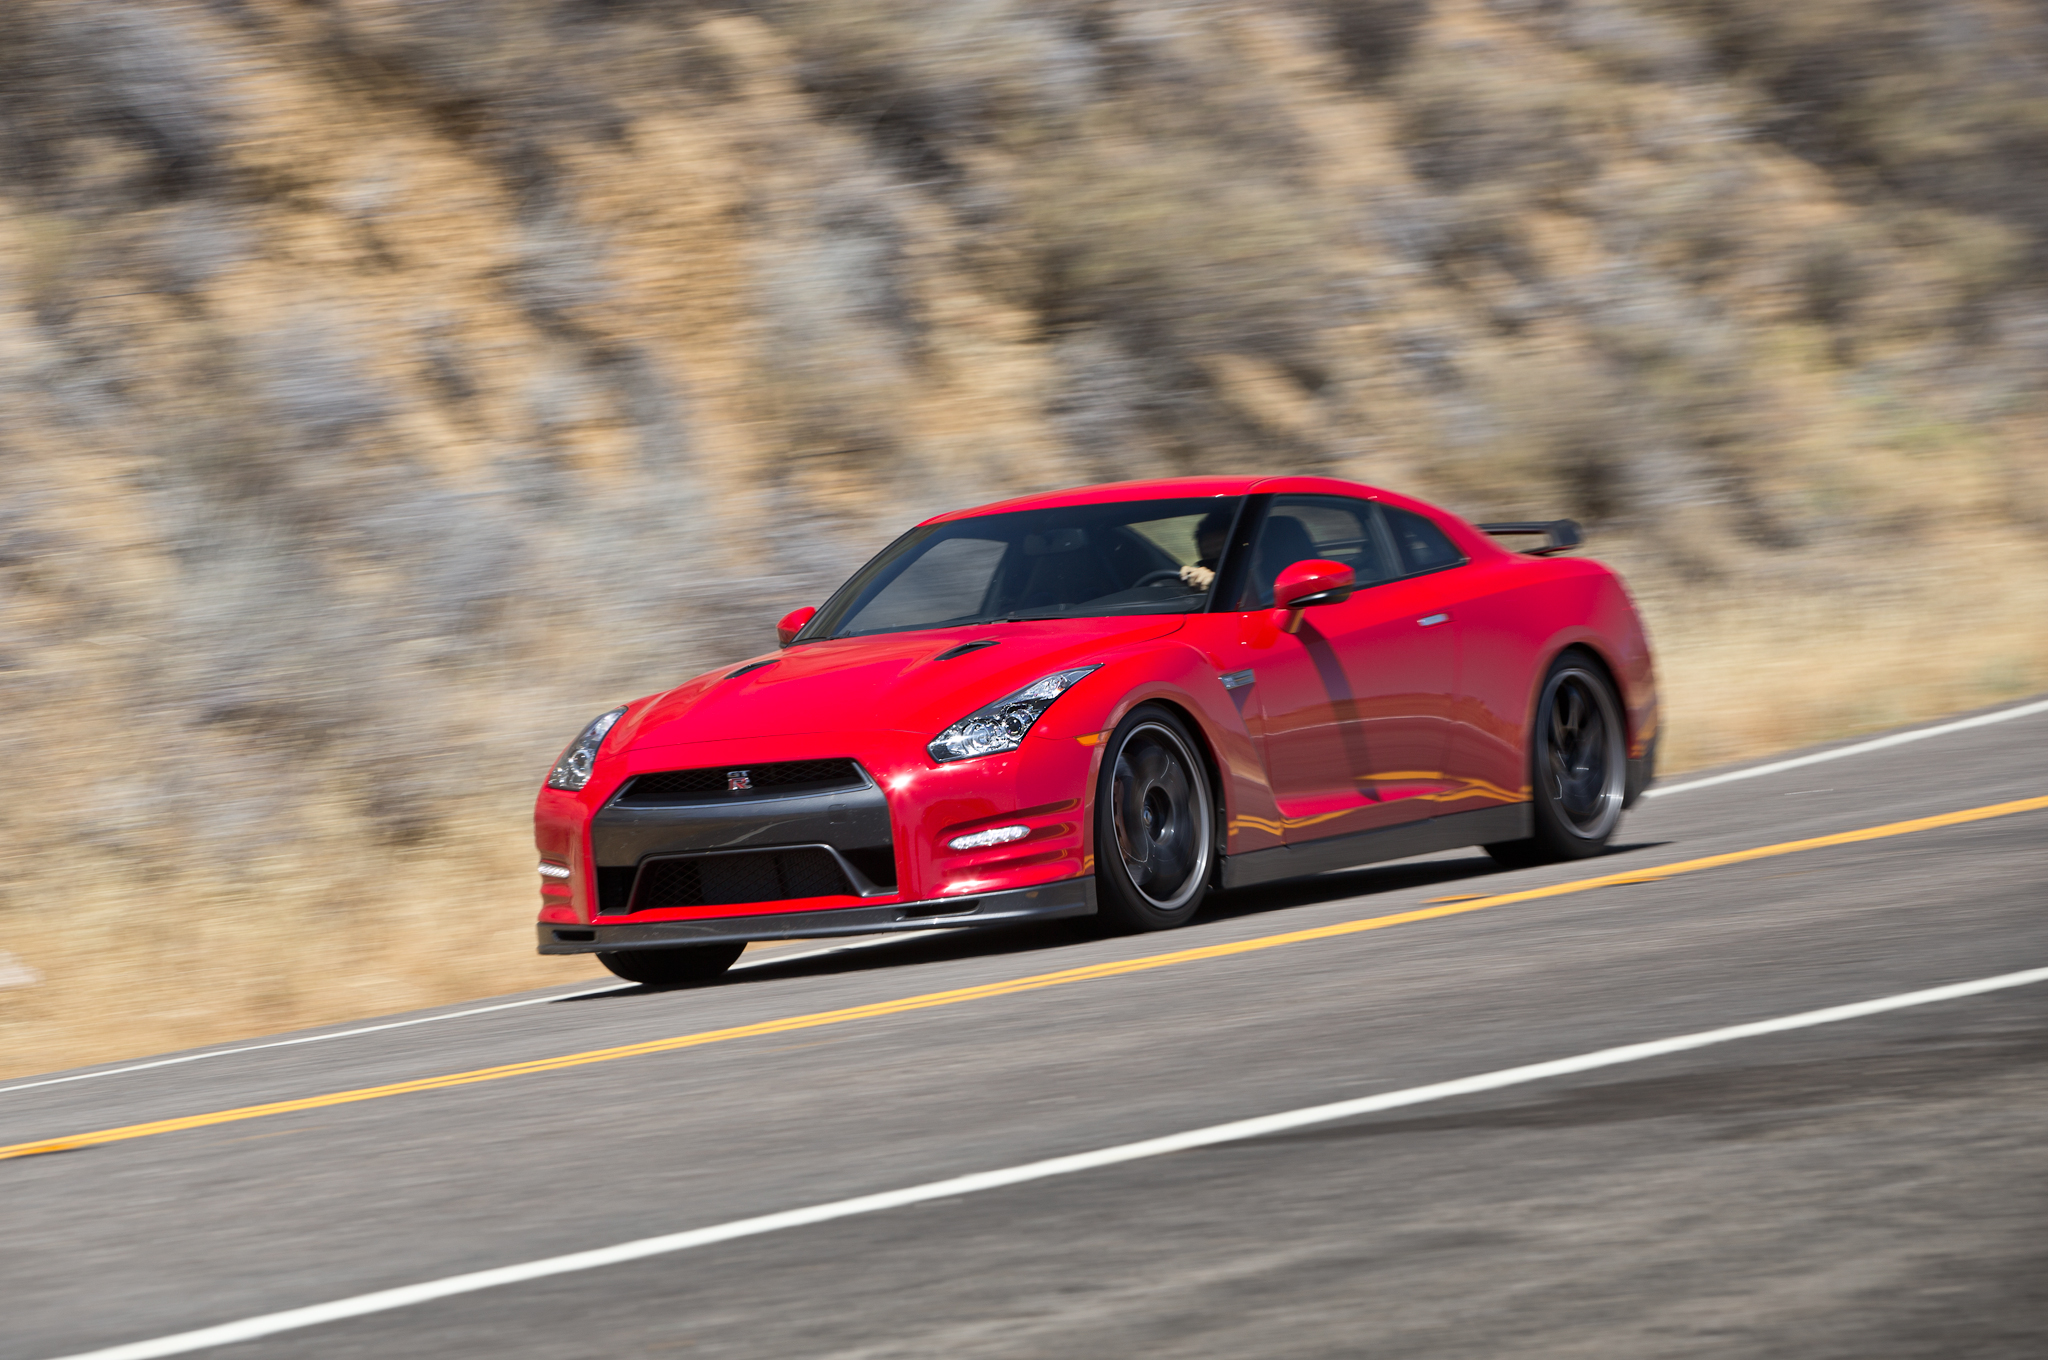 2014 Nissan GT R Track Edition   1:36.63